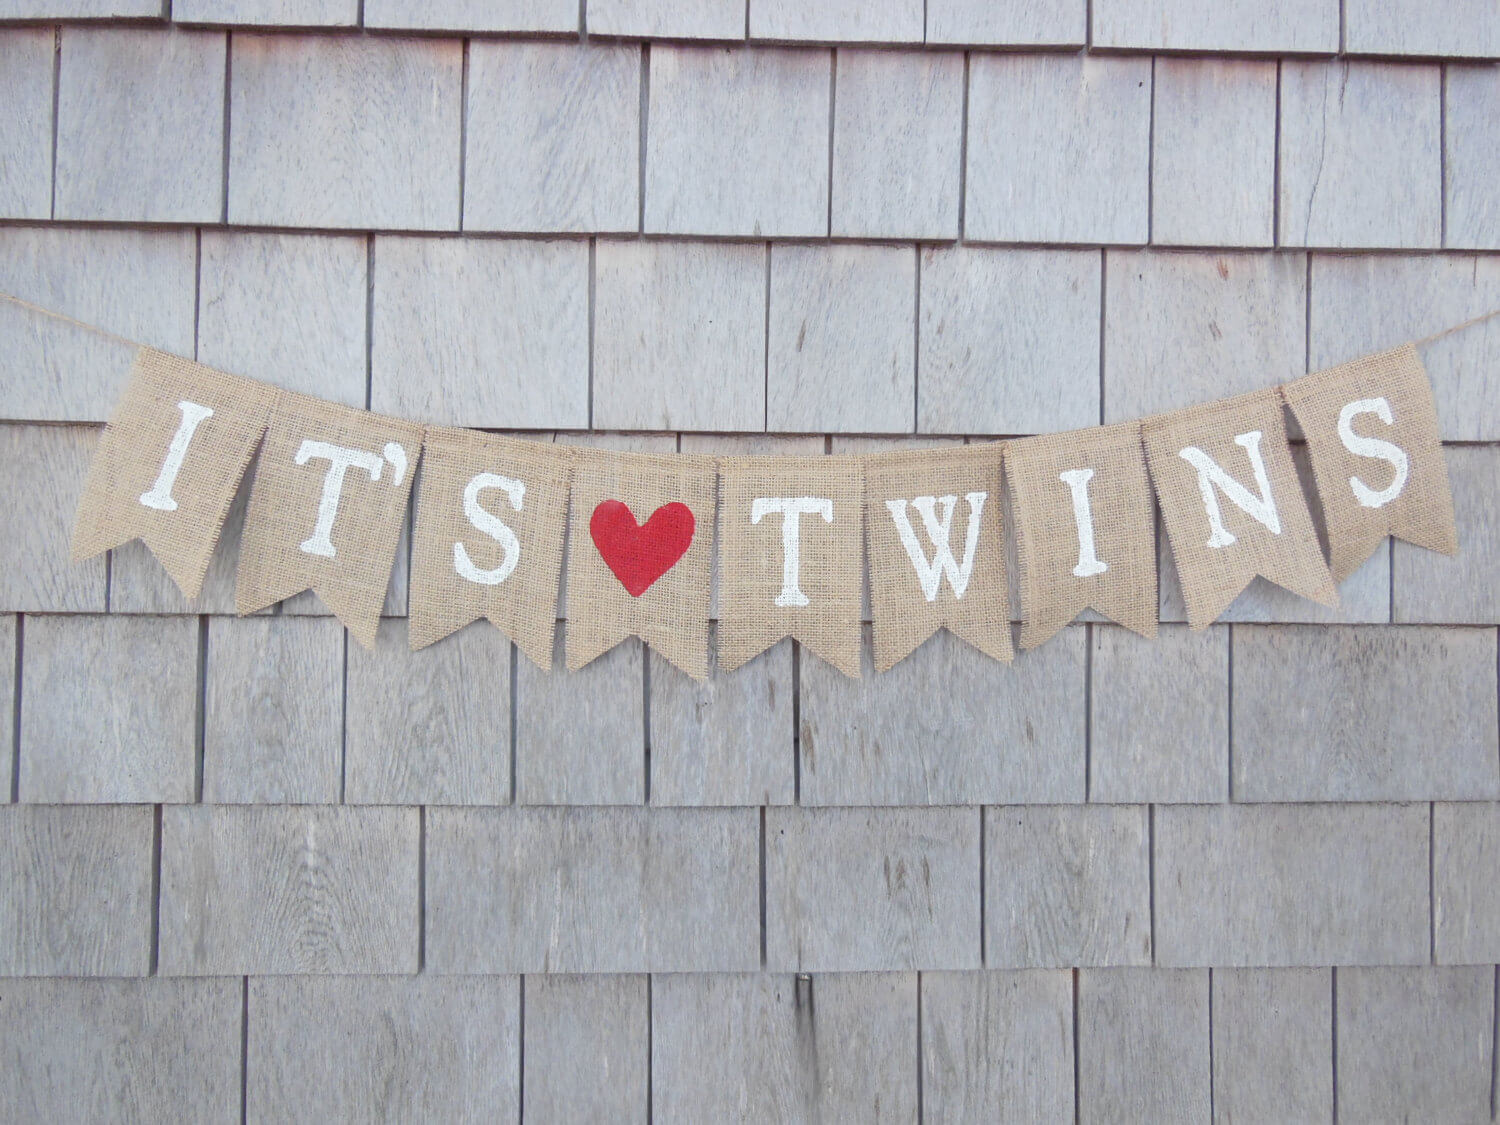 mom organize a baby shower for twins since you are expecting twins